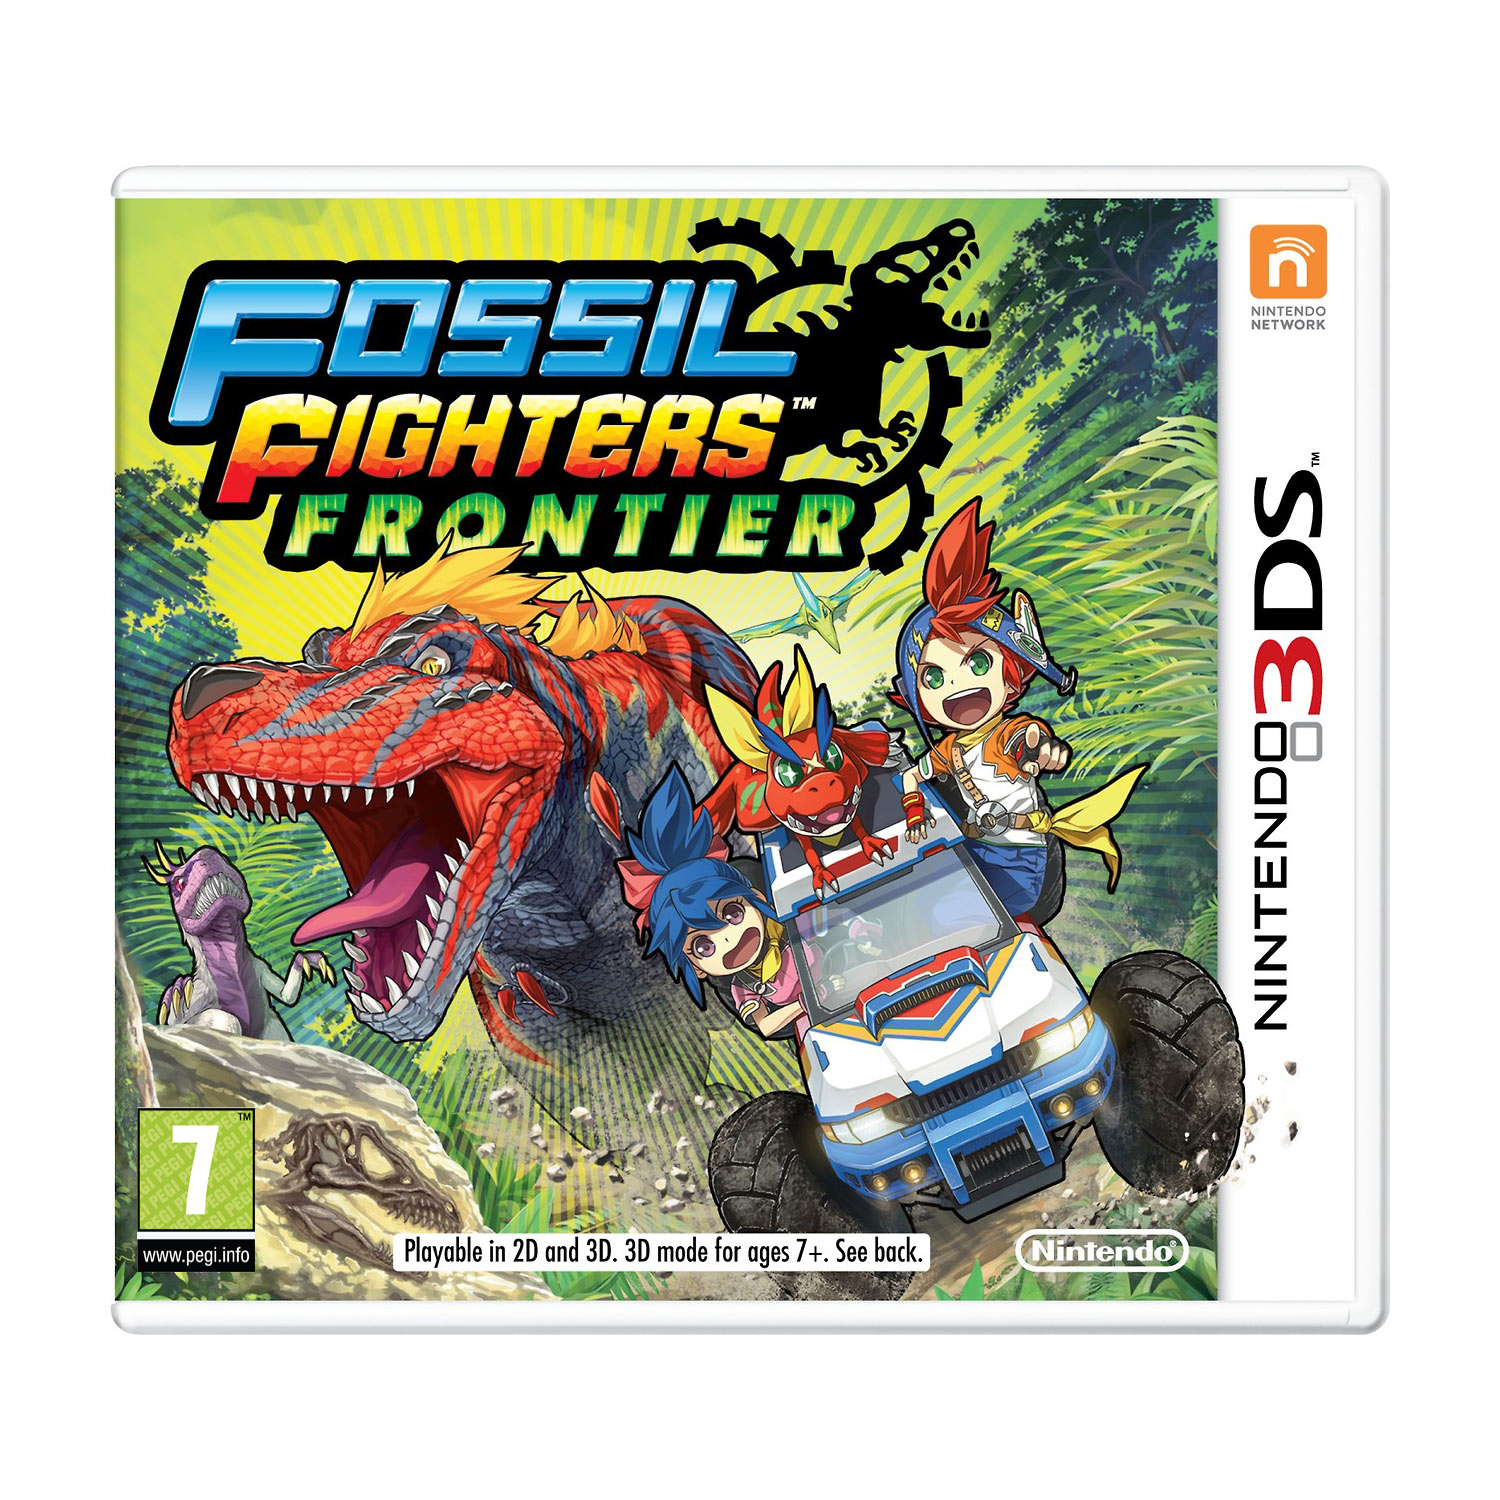 Jeux Nintendo 3DS Fossil Fighters : Frontier (Nintendo 3DS/2DS) Fossil Fighters : Frontier (Nintendo 3DS/2DS)